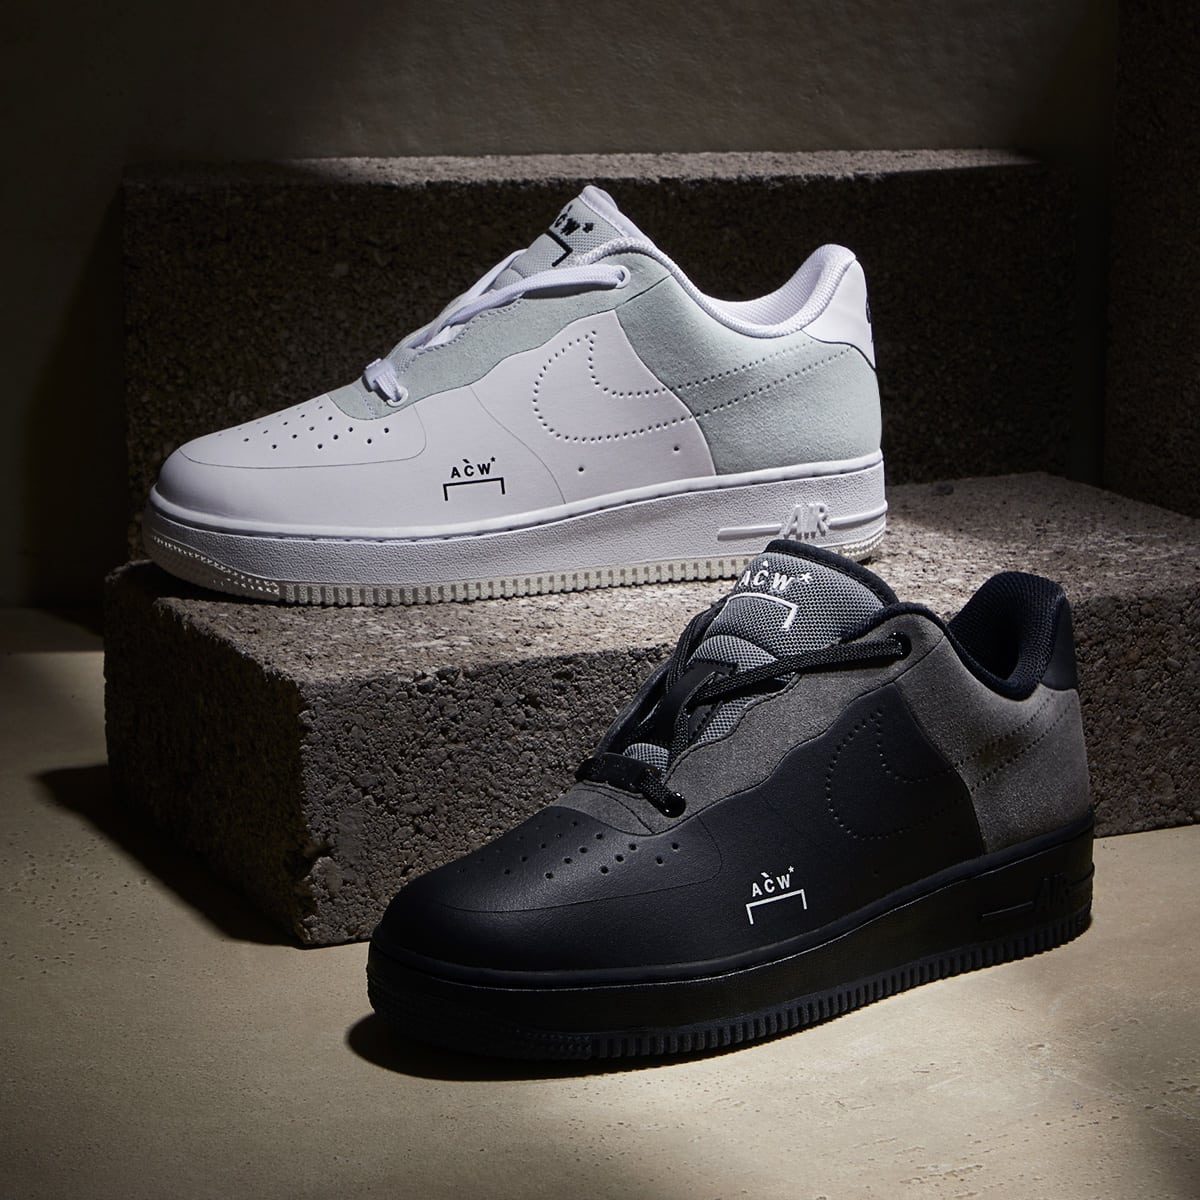 best value c5190 a8b8a END. Features | Nike x A-COLD-WALL* Air Force 1 - Register ...